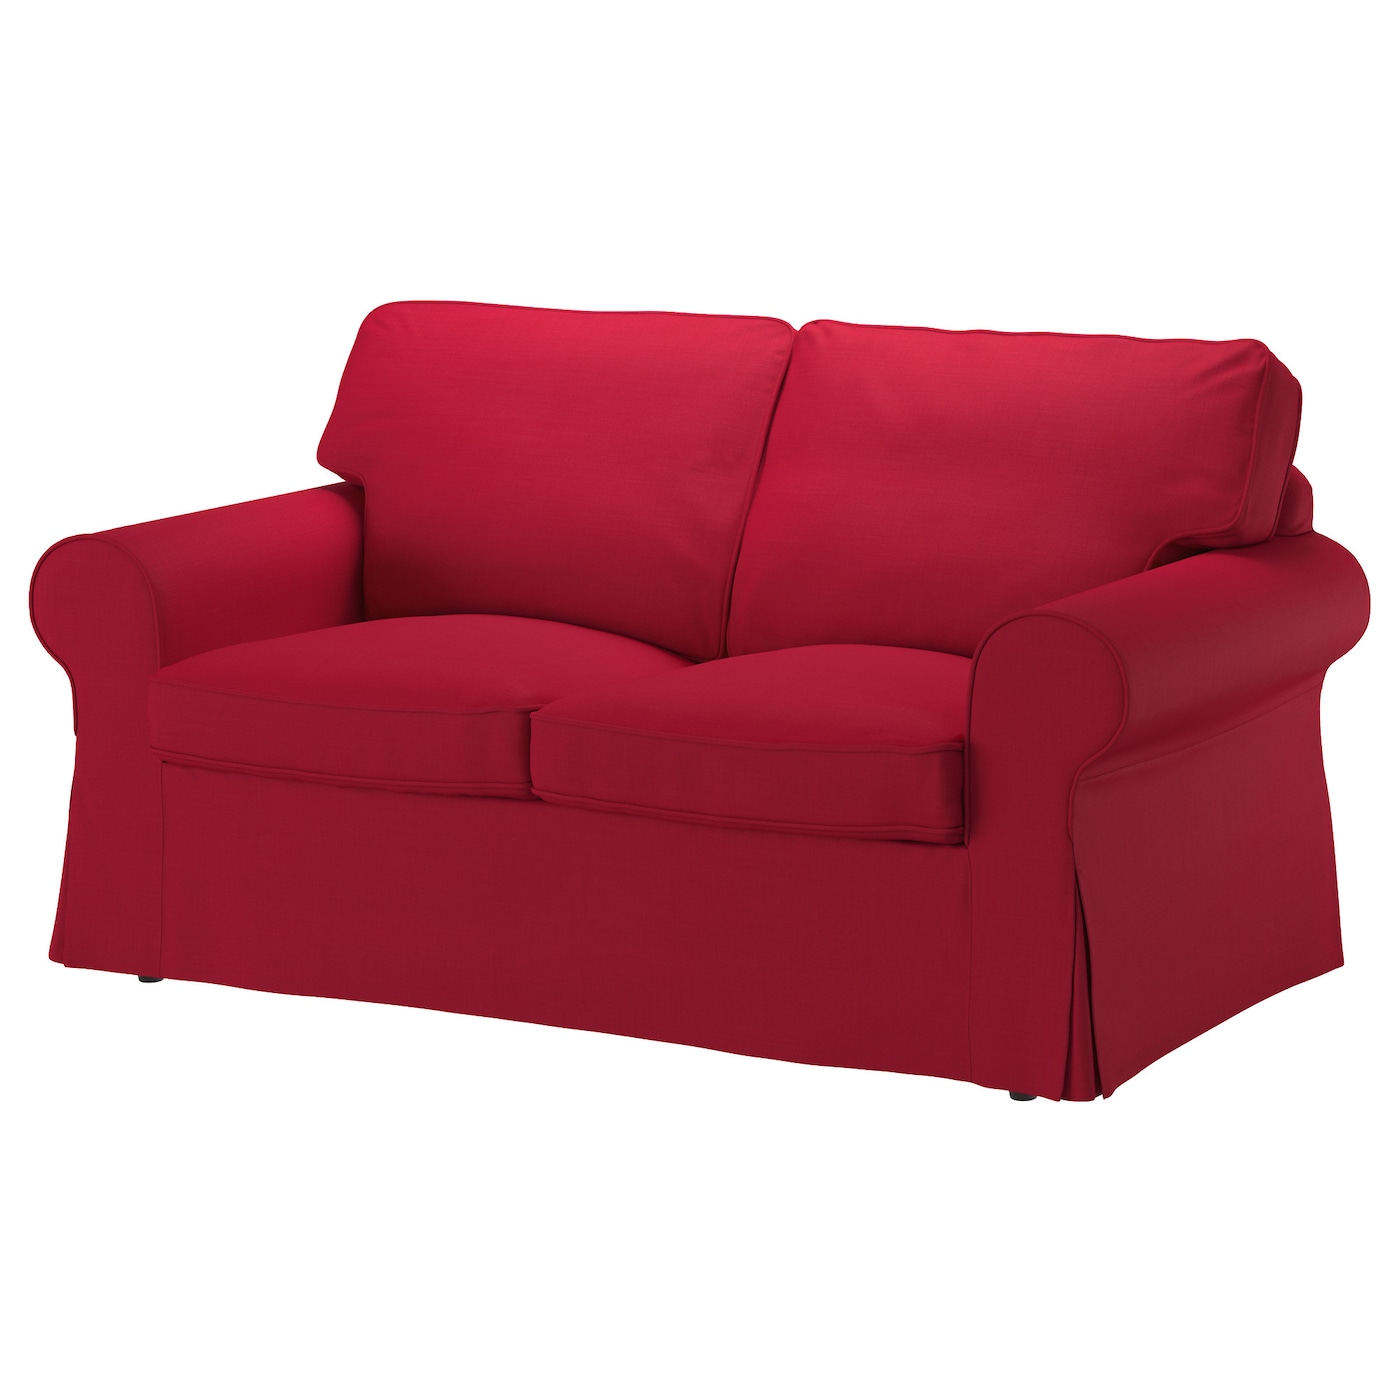 Merveilleux IKEA EKTORP Two Seat Sofa 10 Year Guarantee. Read About The Terms In The